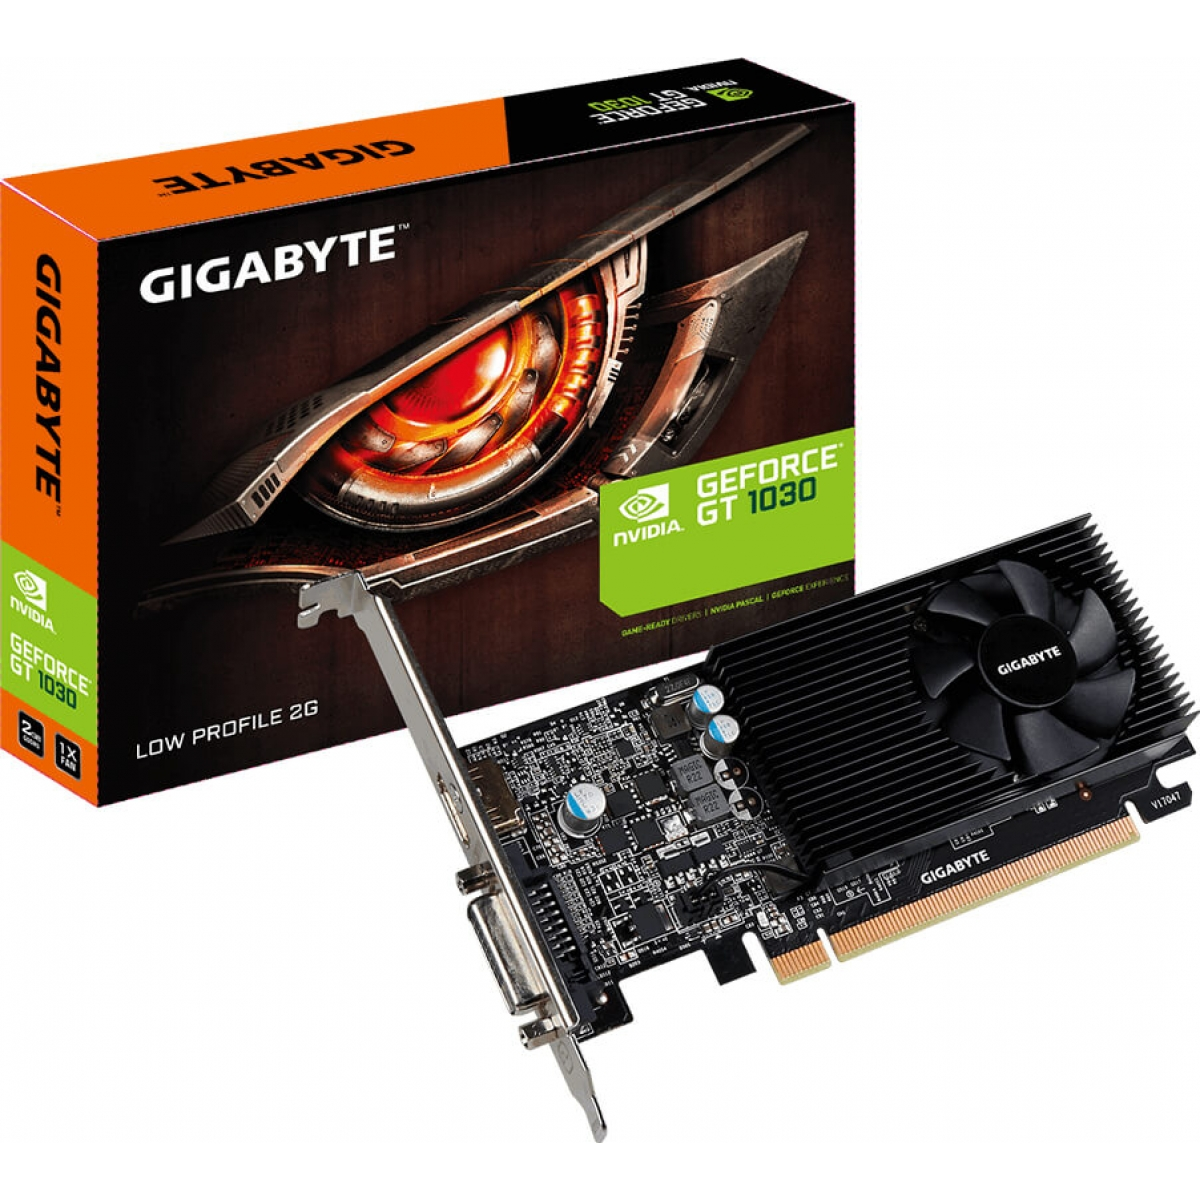 Placa de Vídeo Gigabyte GeForce GT 1030 Low Profile, 2GB GDDR5, 64Bit, GV-N1030D5-2GL